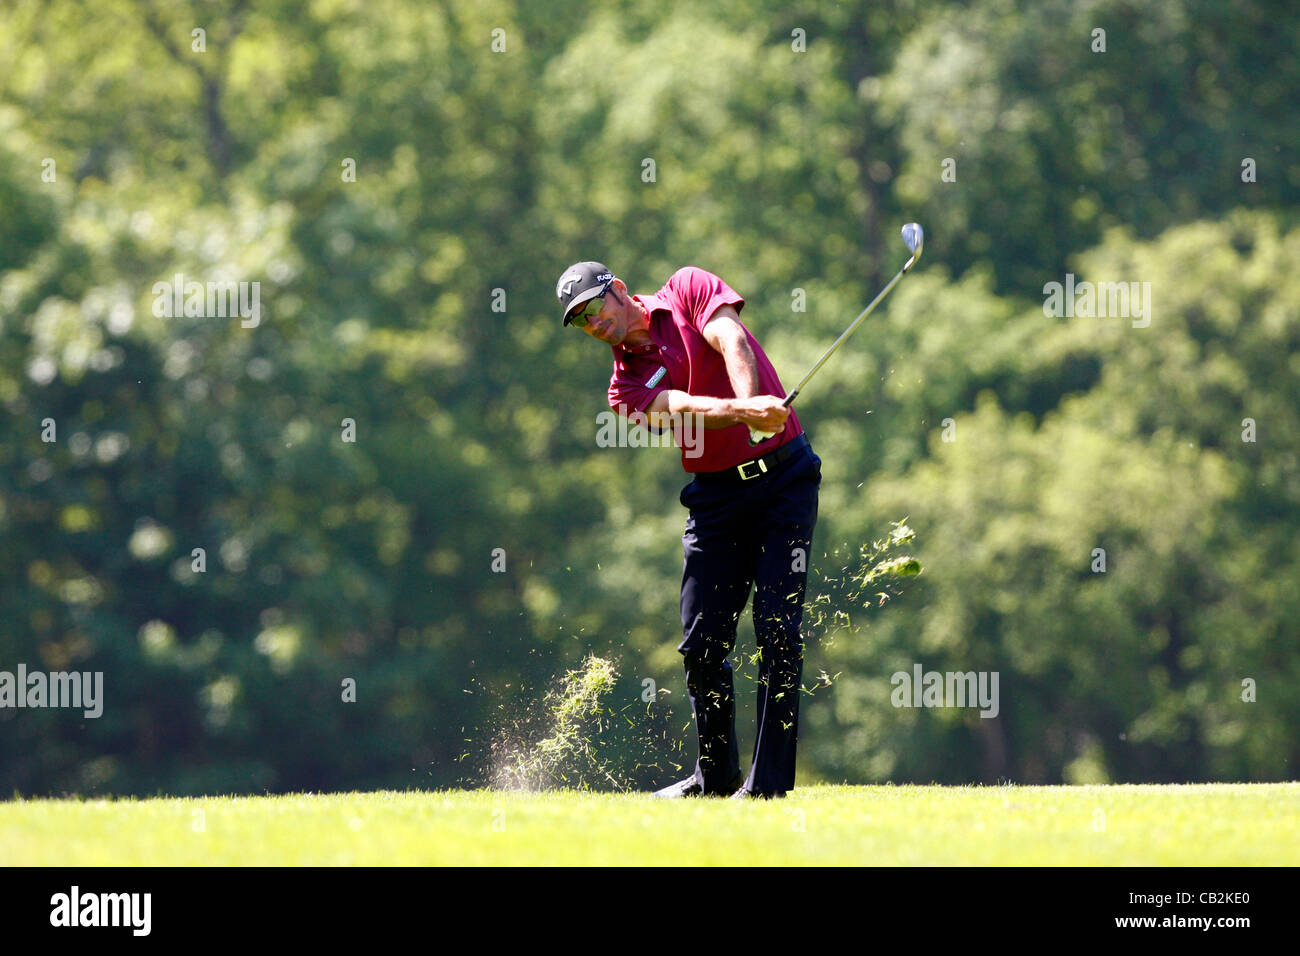 Quiros Stock Photos Amp Quiros Stock Images Alamy